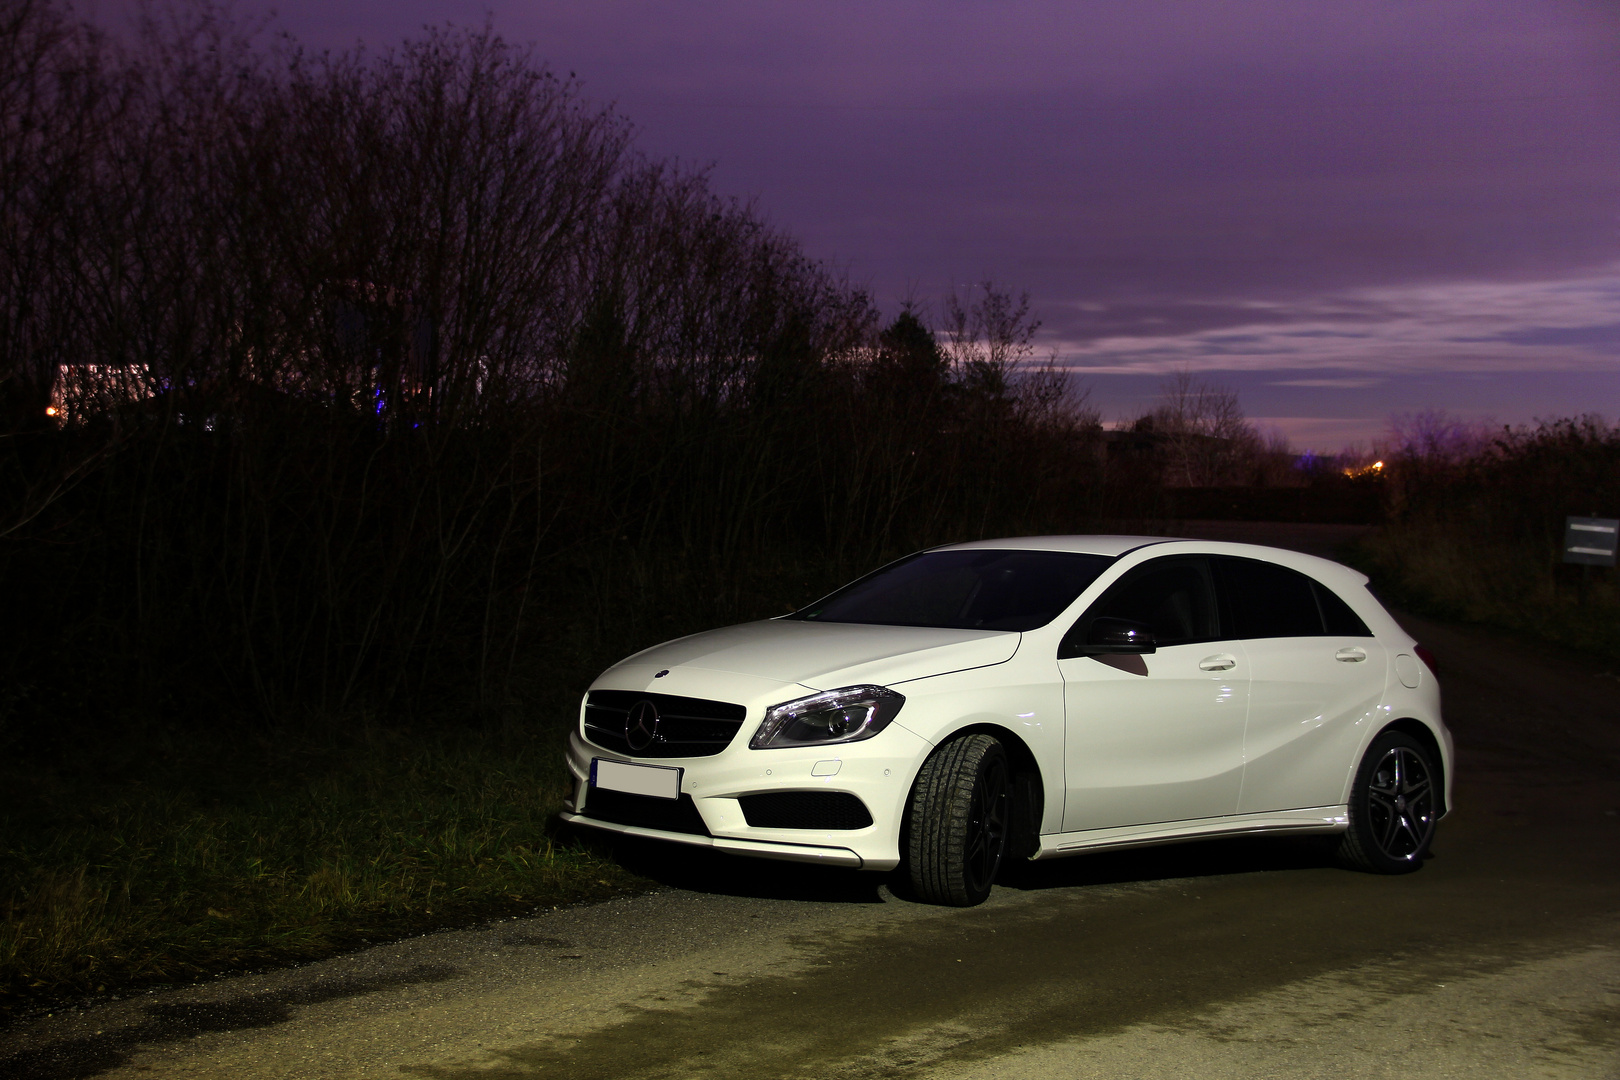 A-Class at Night